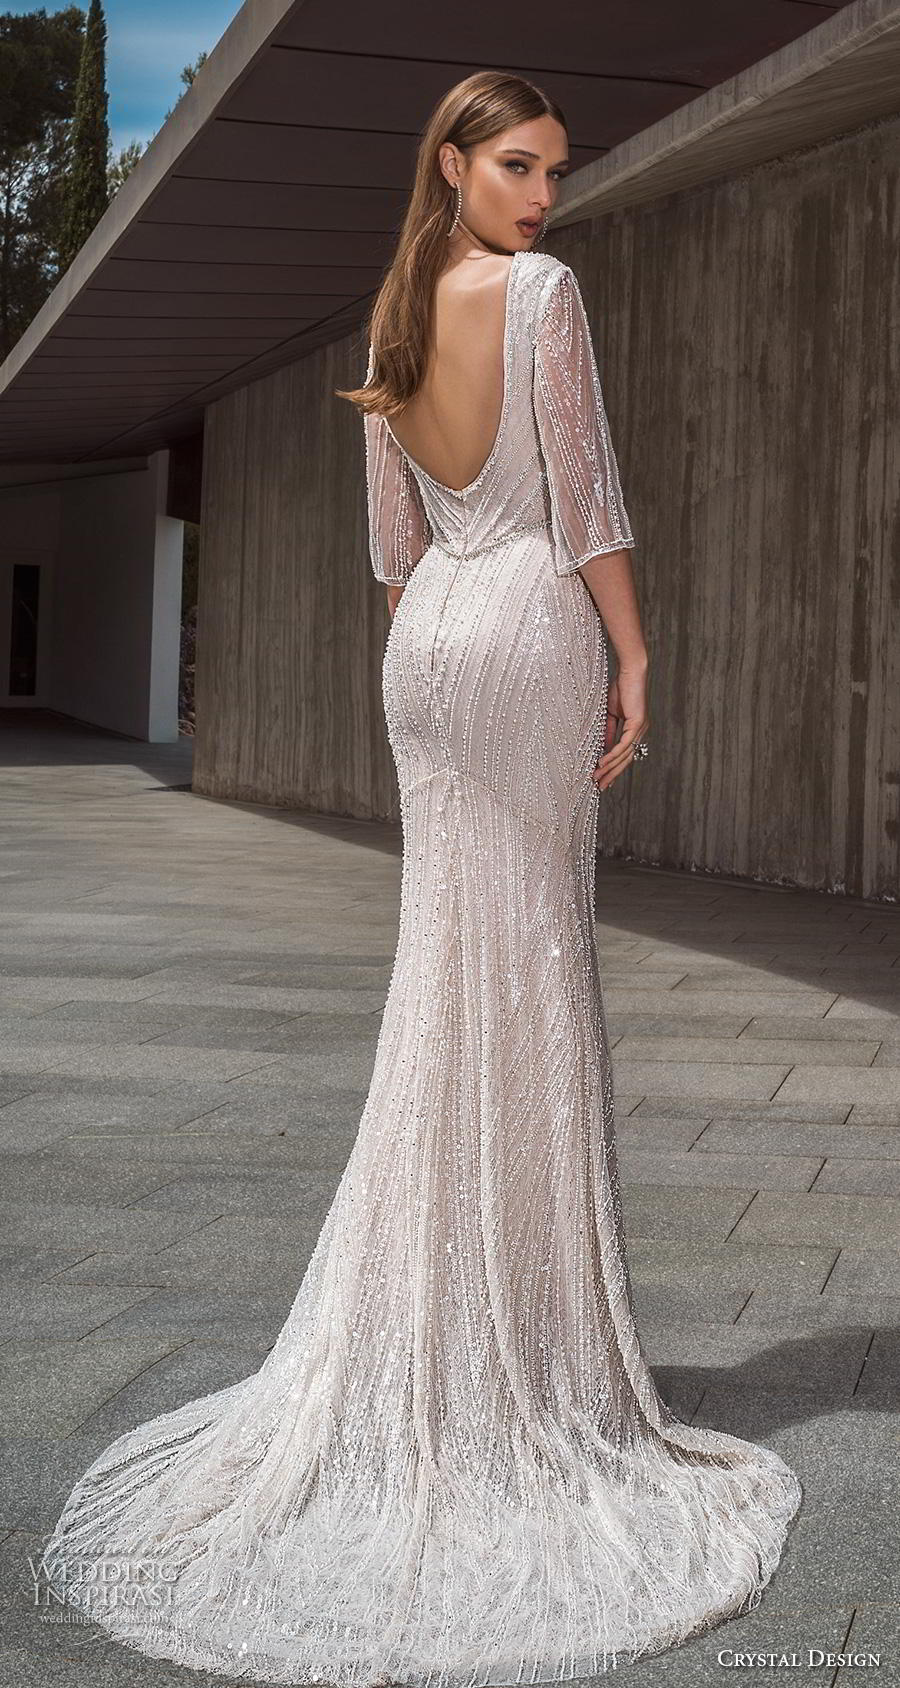 crystal design 2019 bridal three quarter sleeves deep plunging v neck full embellishment glitzy glamorous fit and flare wedding dress backless scoop back short train (7) bv